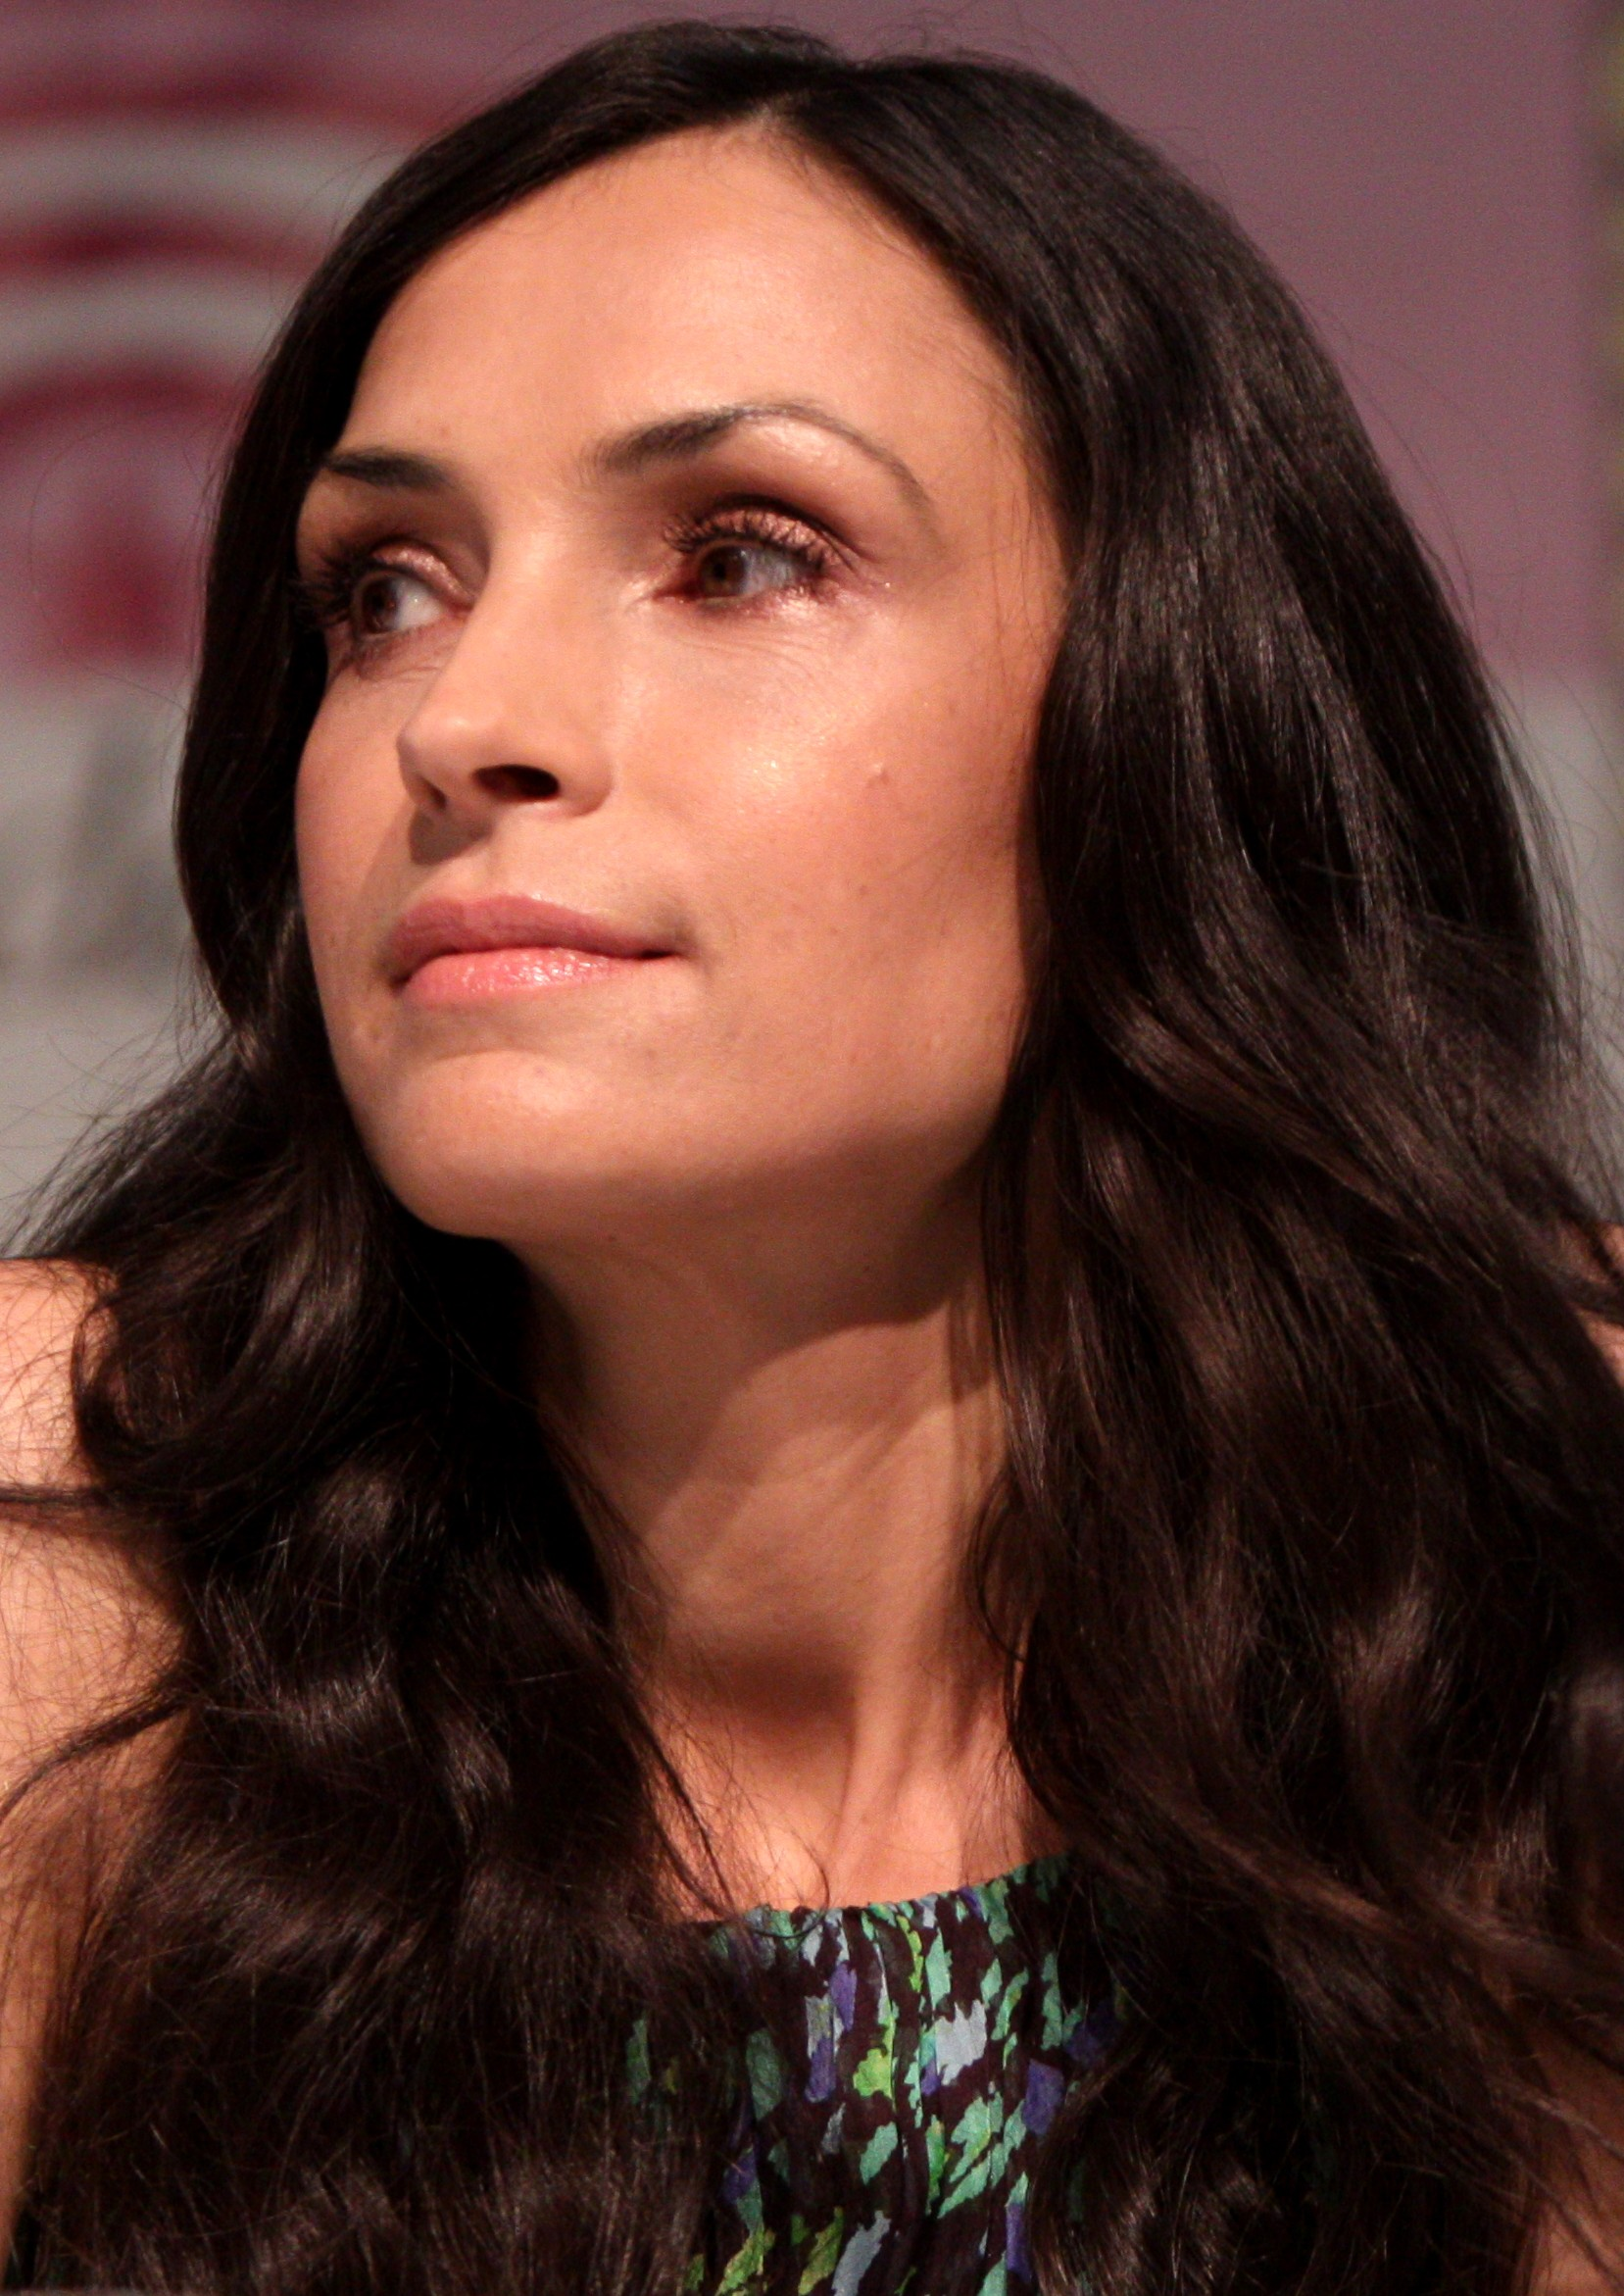 Famke Janssen Famke Janssen Wikipedia the free encyclopedia